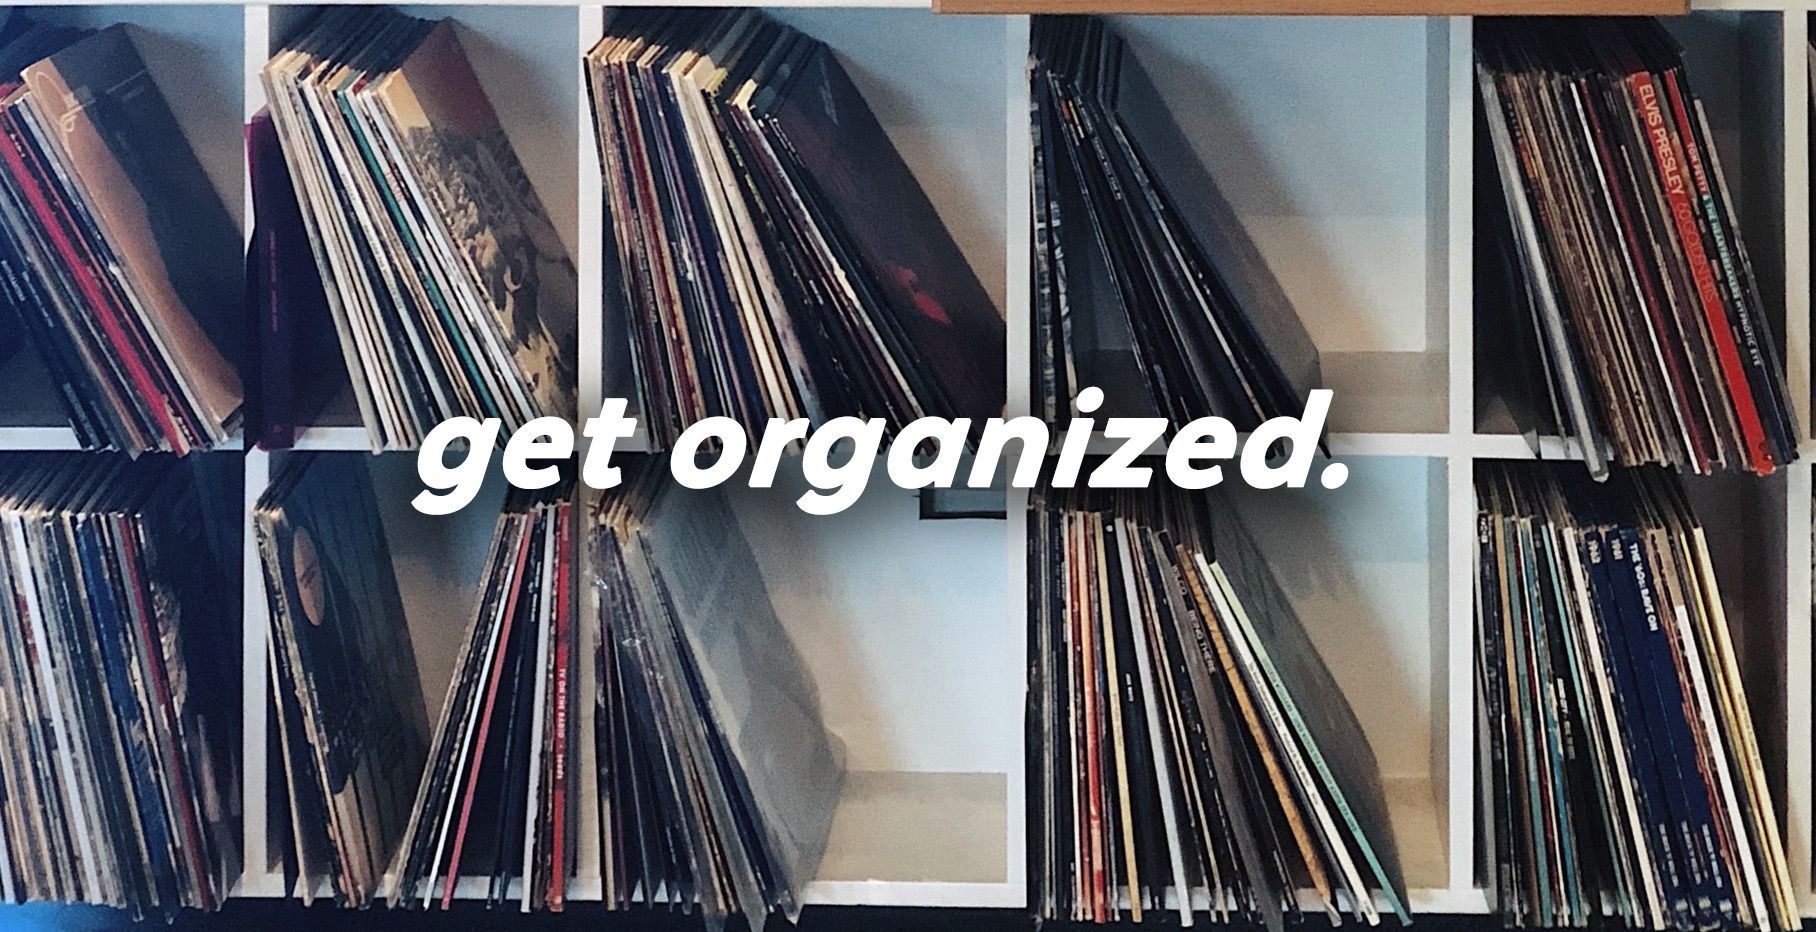 6 ways DJs can get organized during lockdown (you'll thank yourself later)